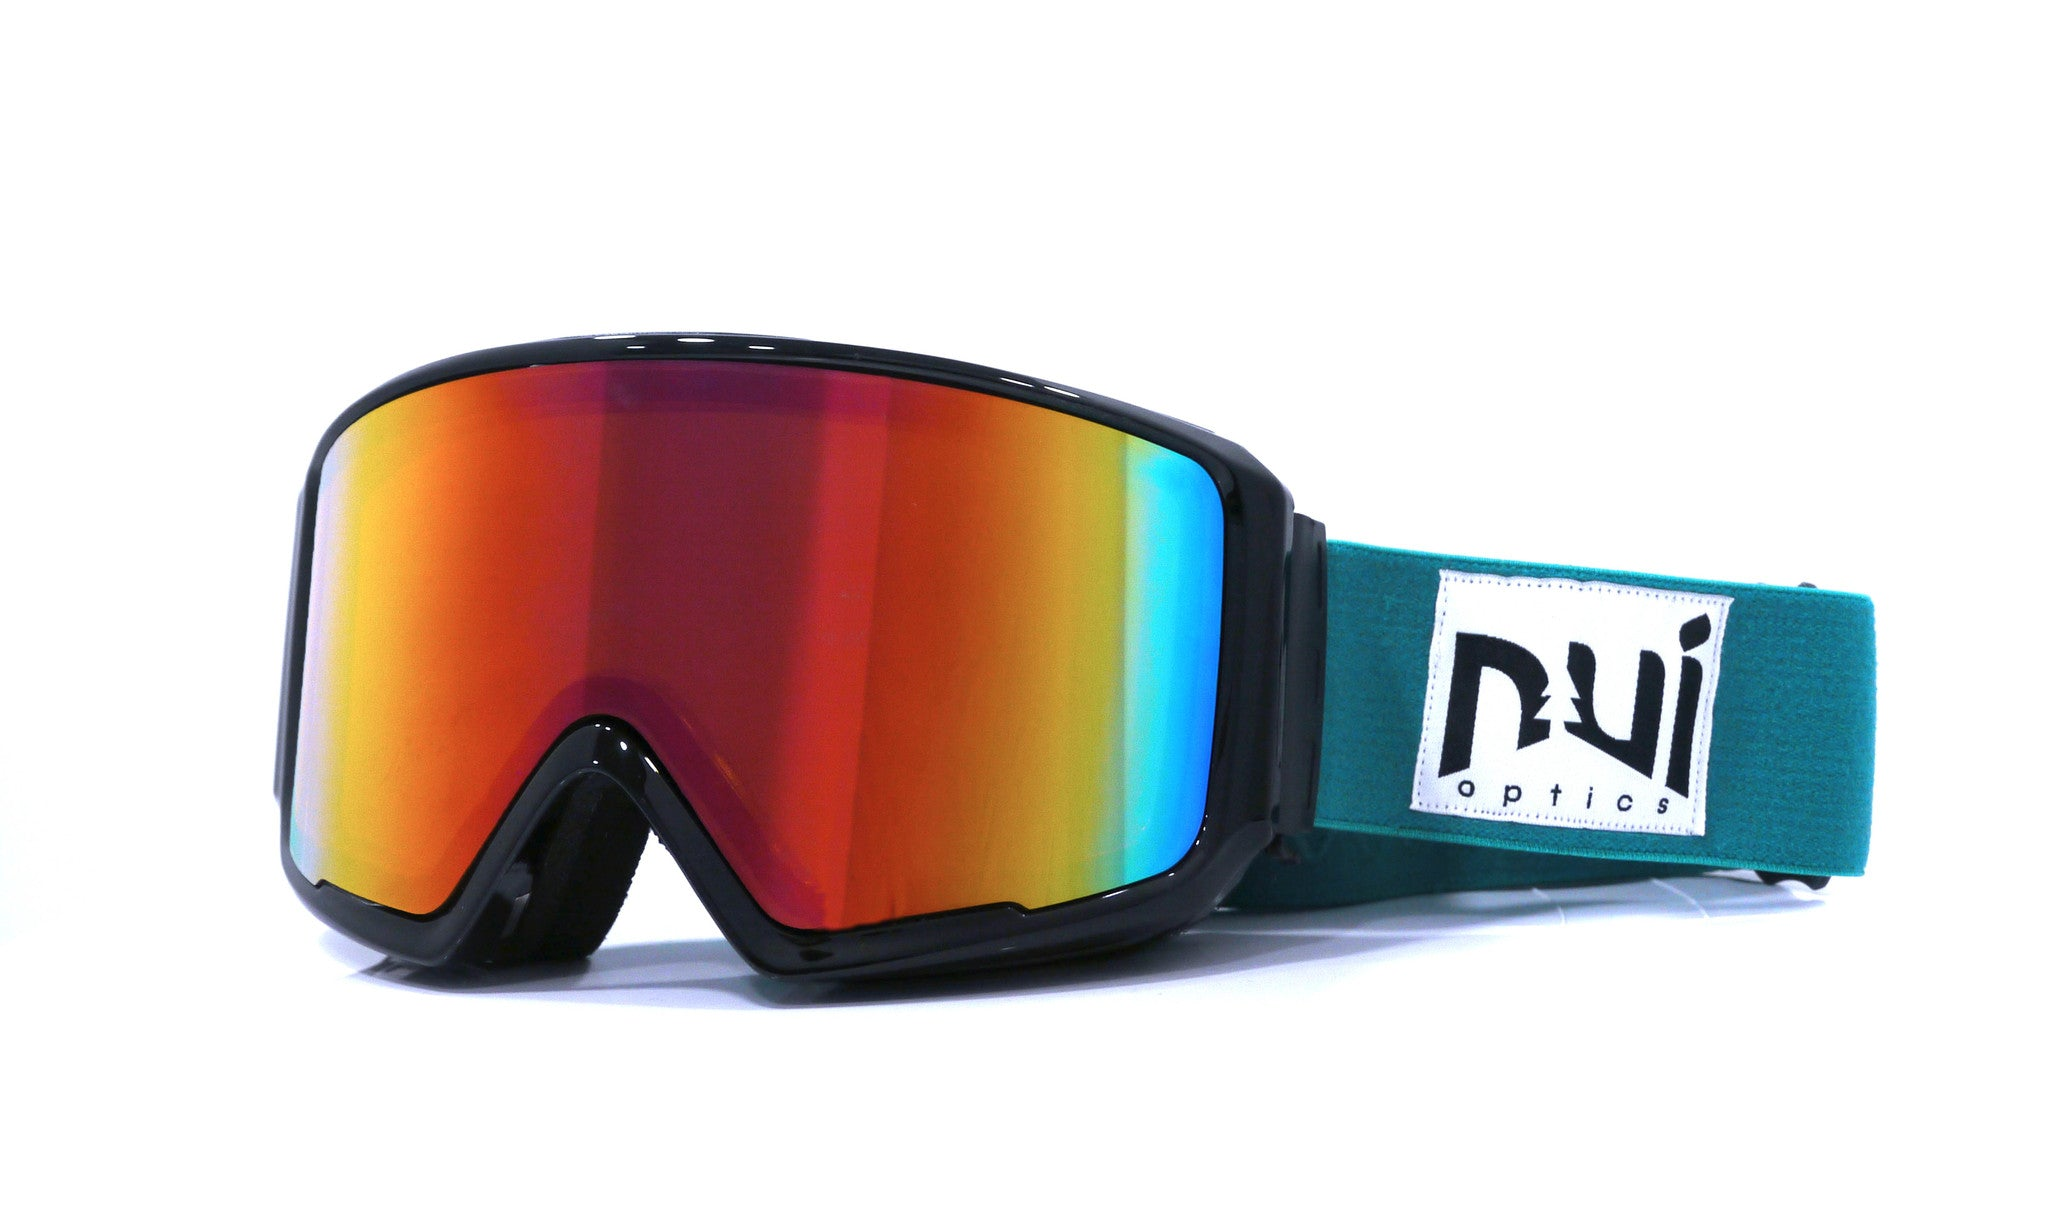 Woods Black - Fire / Bluish - Nui Optics